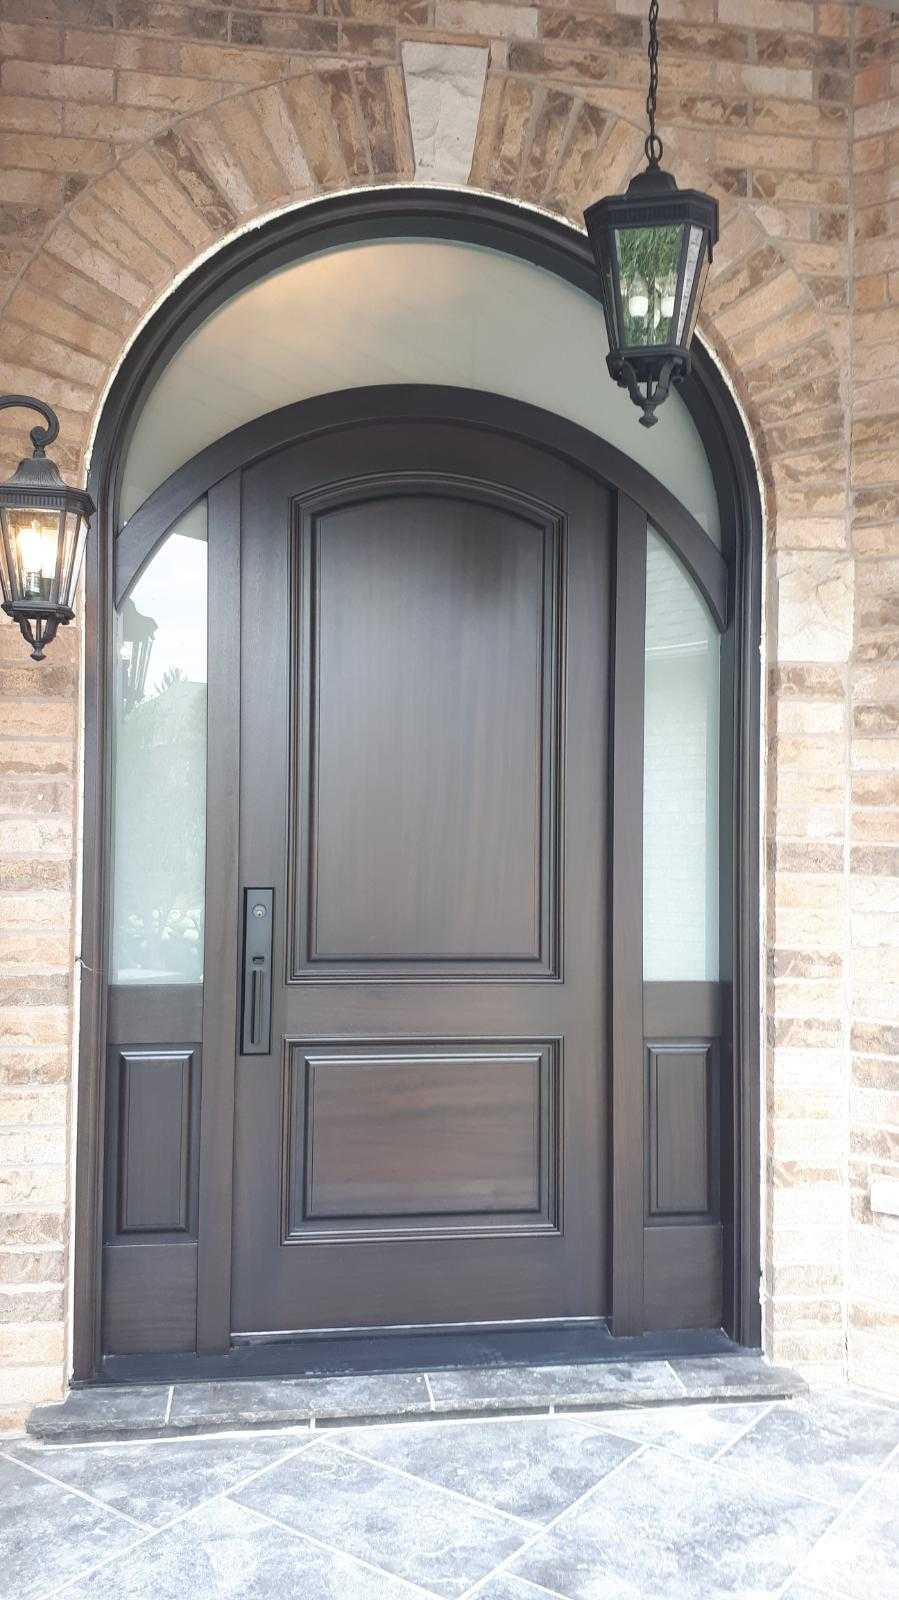 """Optimism is the faith that leads to achievement"" #SolidWood, #Doors, #Wood #Mahogany, #CustomMadeDoors, #EntryDoors.#DistinctiveLo­ok, #FityourHome Made by #NorthwoodDoorsInc. Your best value and quality, #HandCraftedDoors. Every door #Manifactured by us has our corporate stamp - a testament to our dedication and passion in #Woodwork. Let #NorthwoodDoorsInc. add to your home's #CurbAppeal by enhancing the quality and beauty of your #EntryDoors. Visit our #Showroom to envision how one of our many #doors on display might look like at your #Home. Contact us today Tel. 416-253-2034, info@northwooddoors.com, www.northwooddoor.com — in Toronto, Ontario"